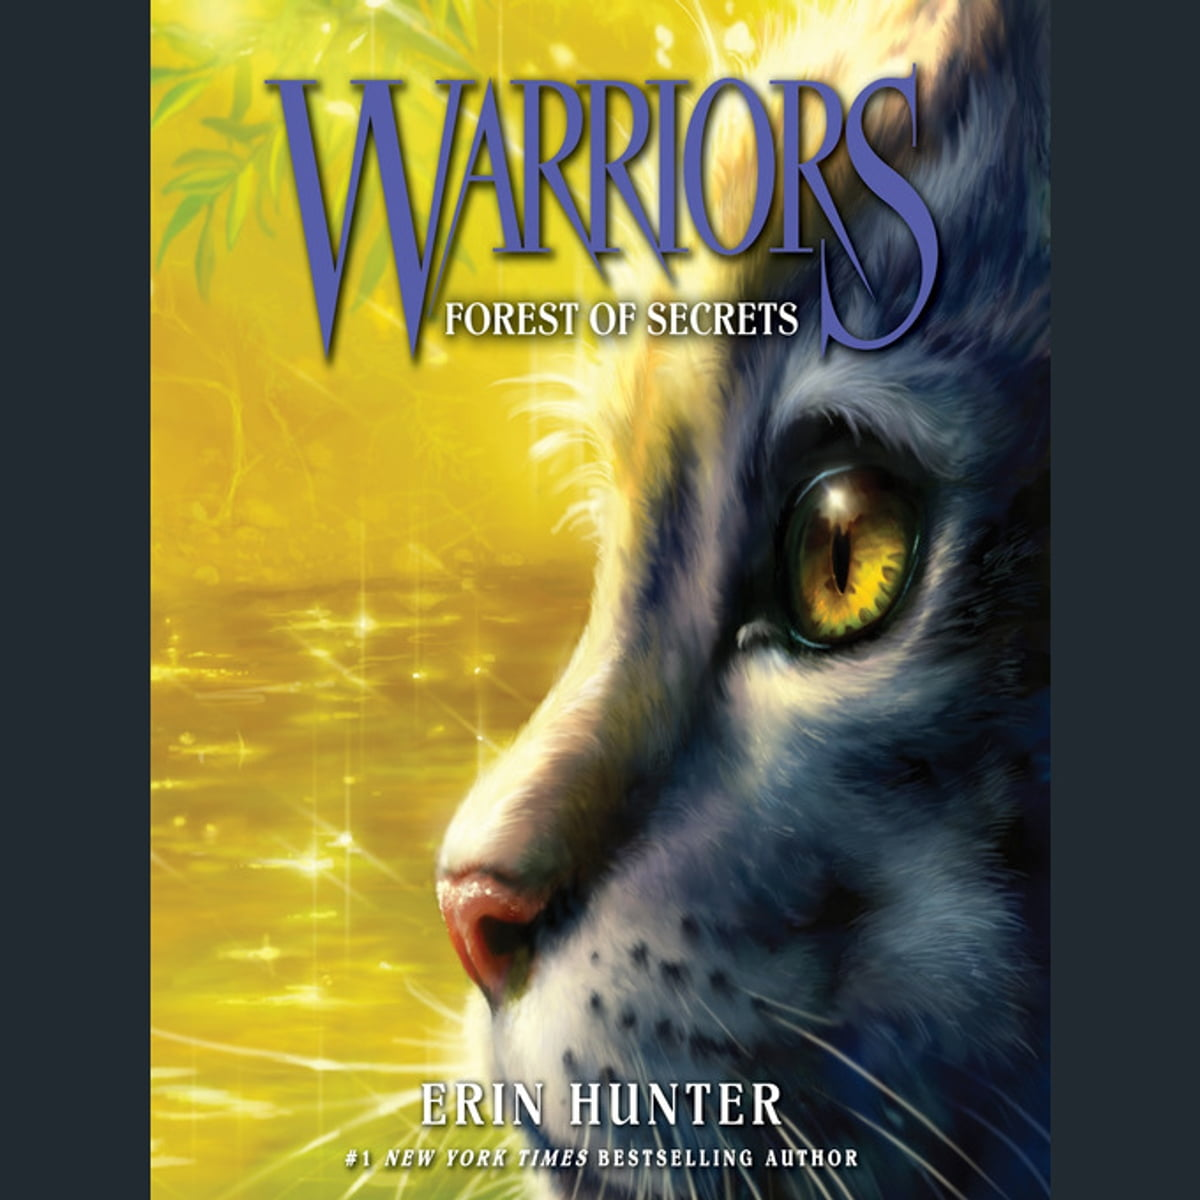 By Erin Hunter Warriors App: Warriors #3: Forest Of Secrets Audiobook By Erin Hunter